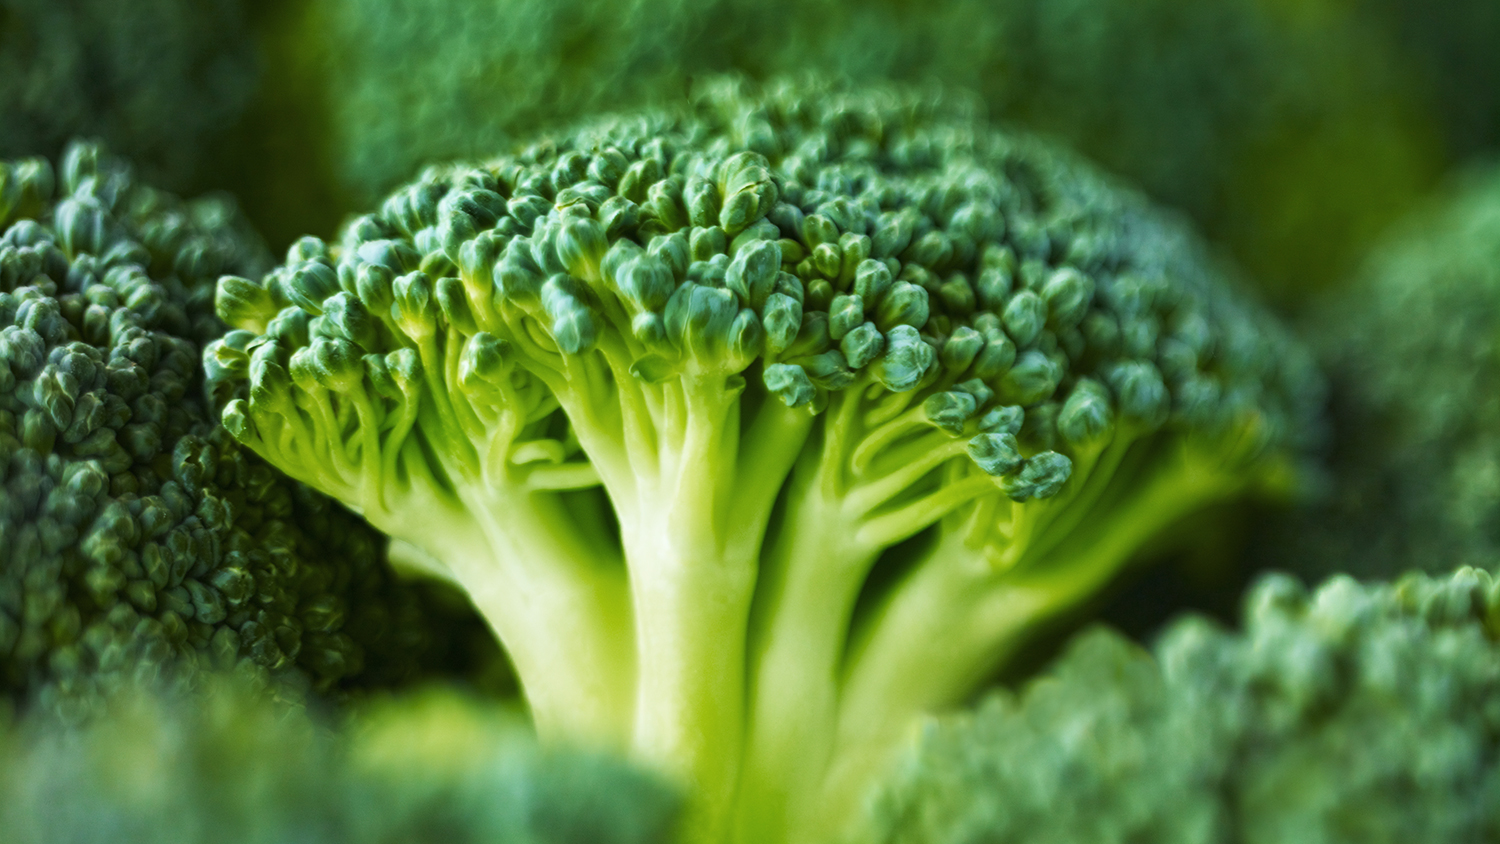 broccoli uk favorite vegetale